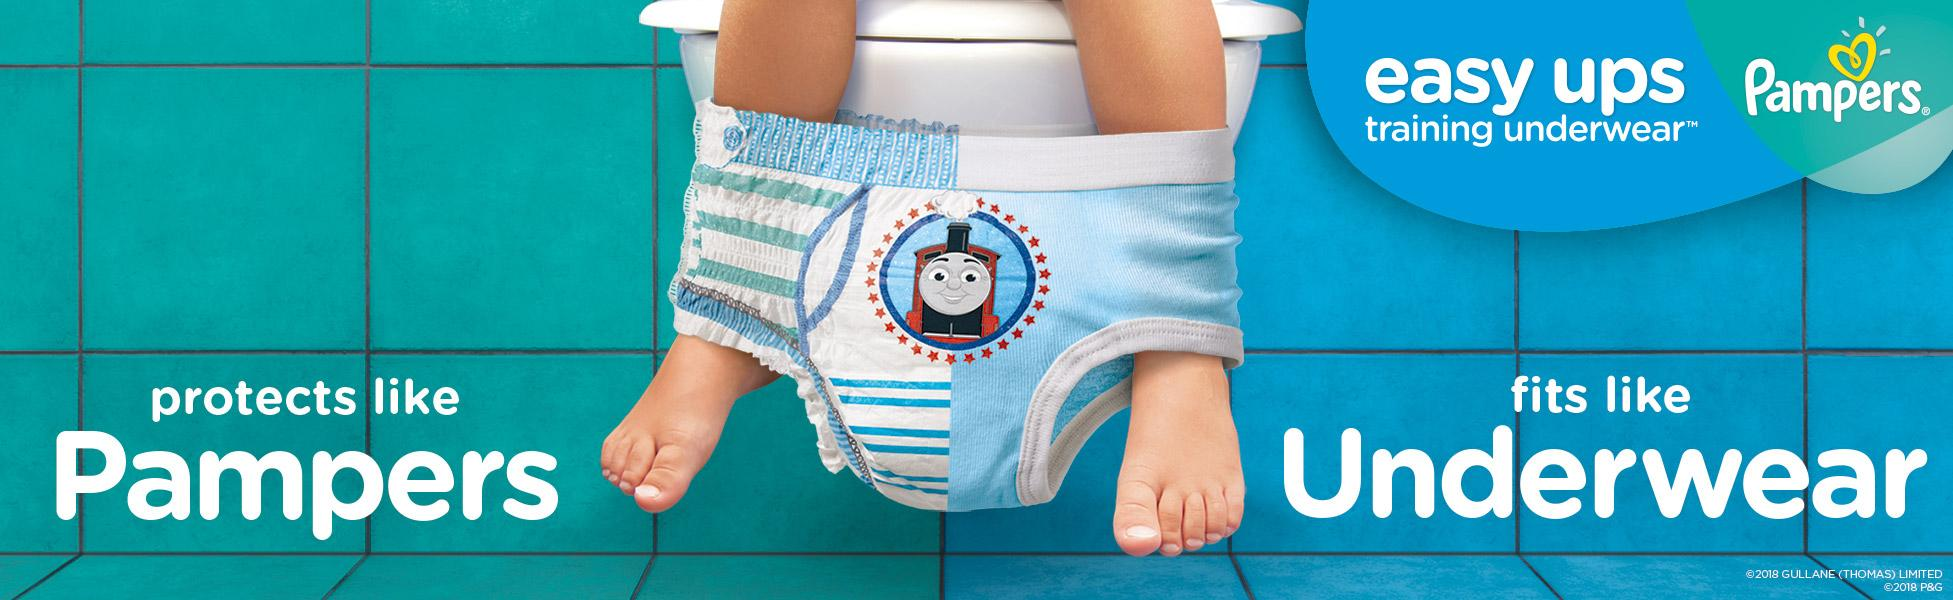 Pampers Toddler Training Underwear for Toddlers, Easy Ups ...